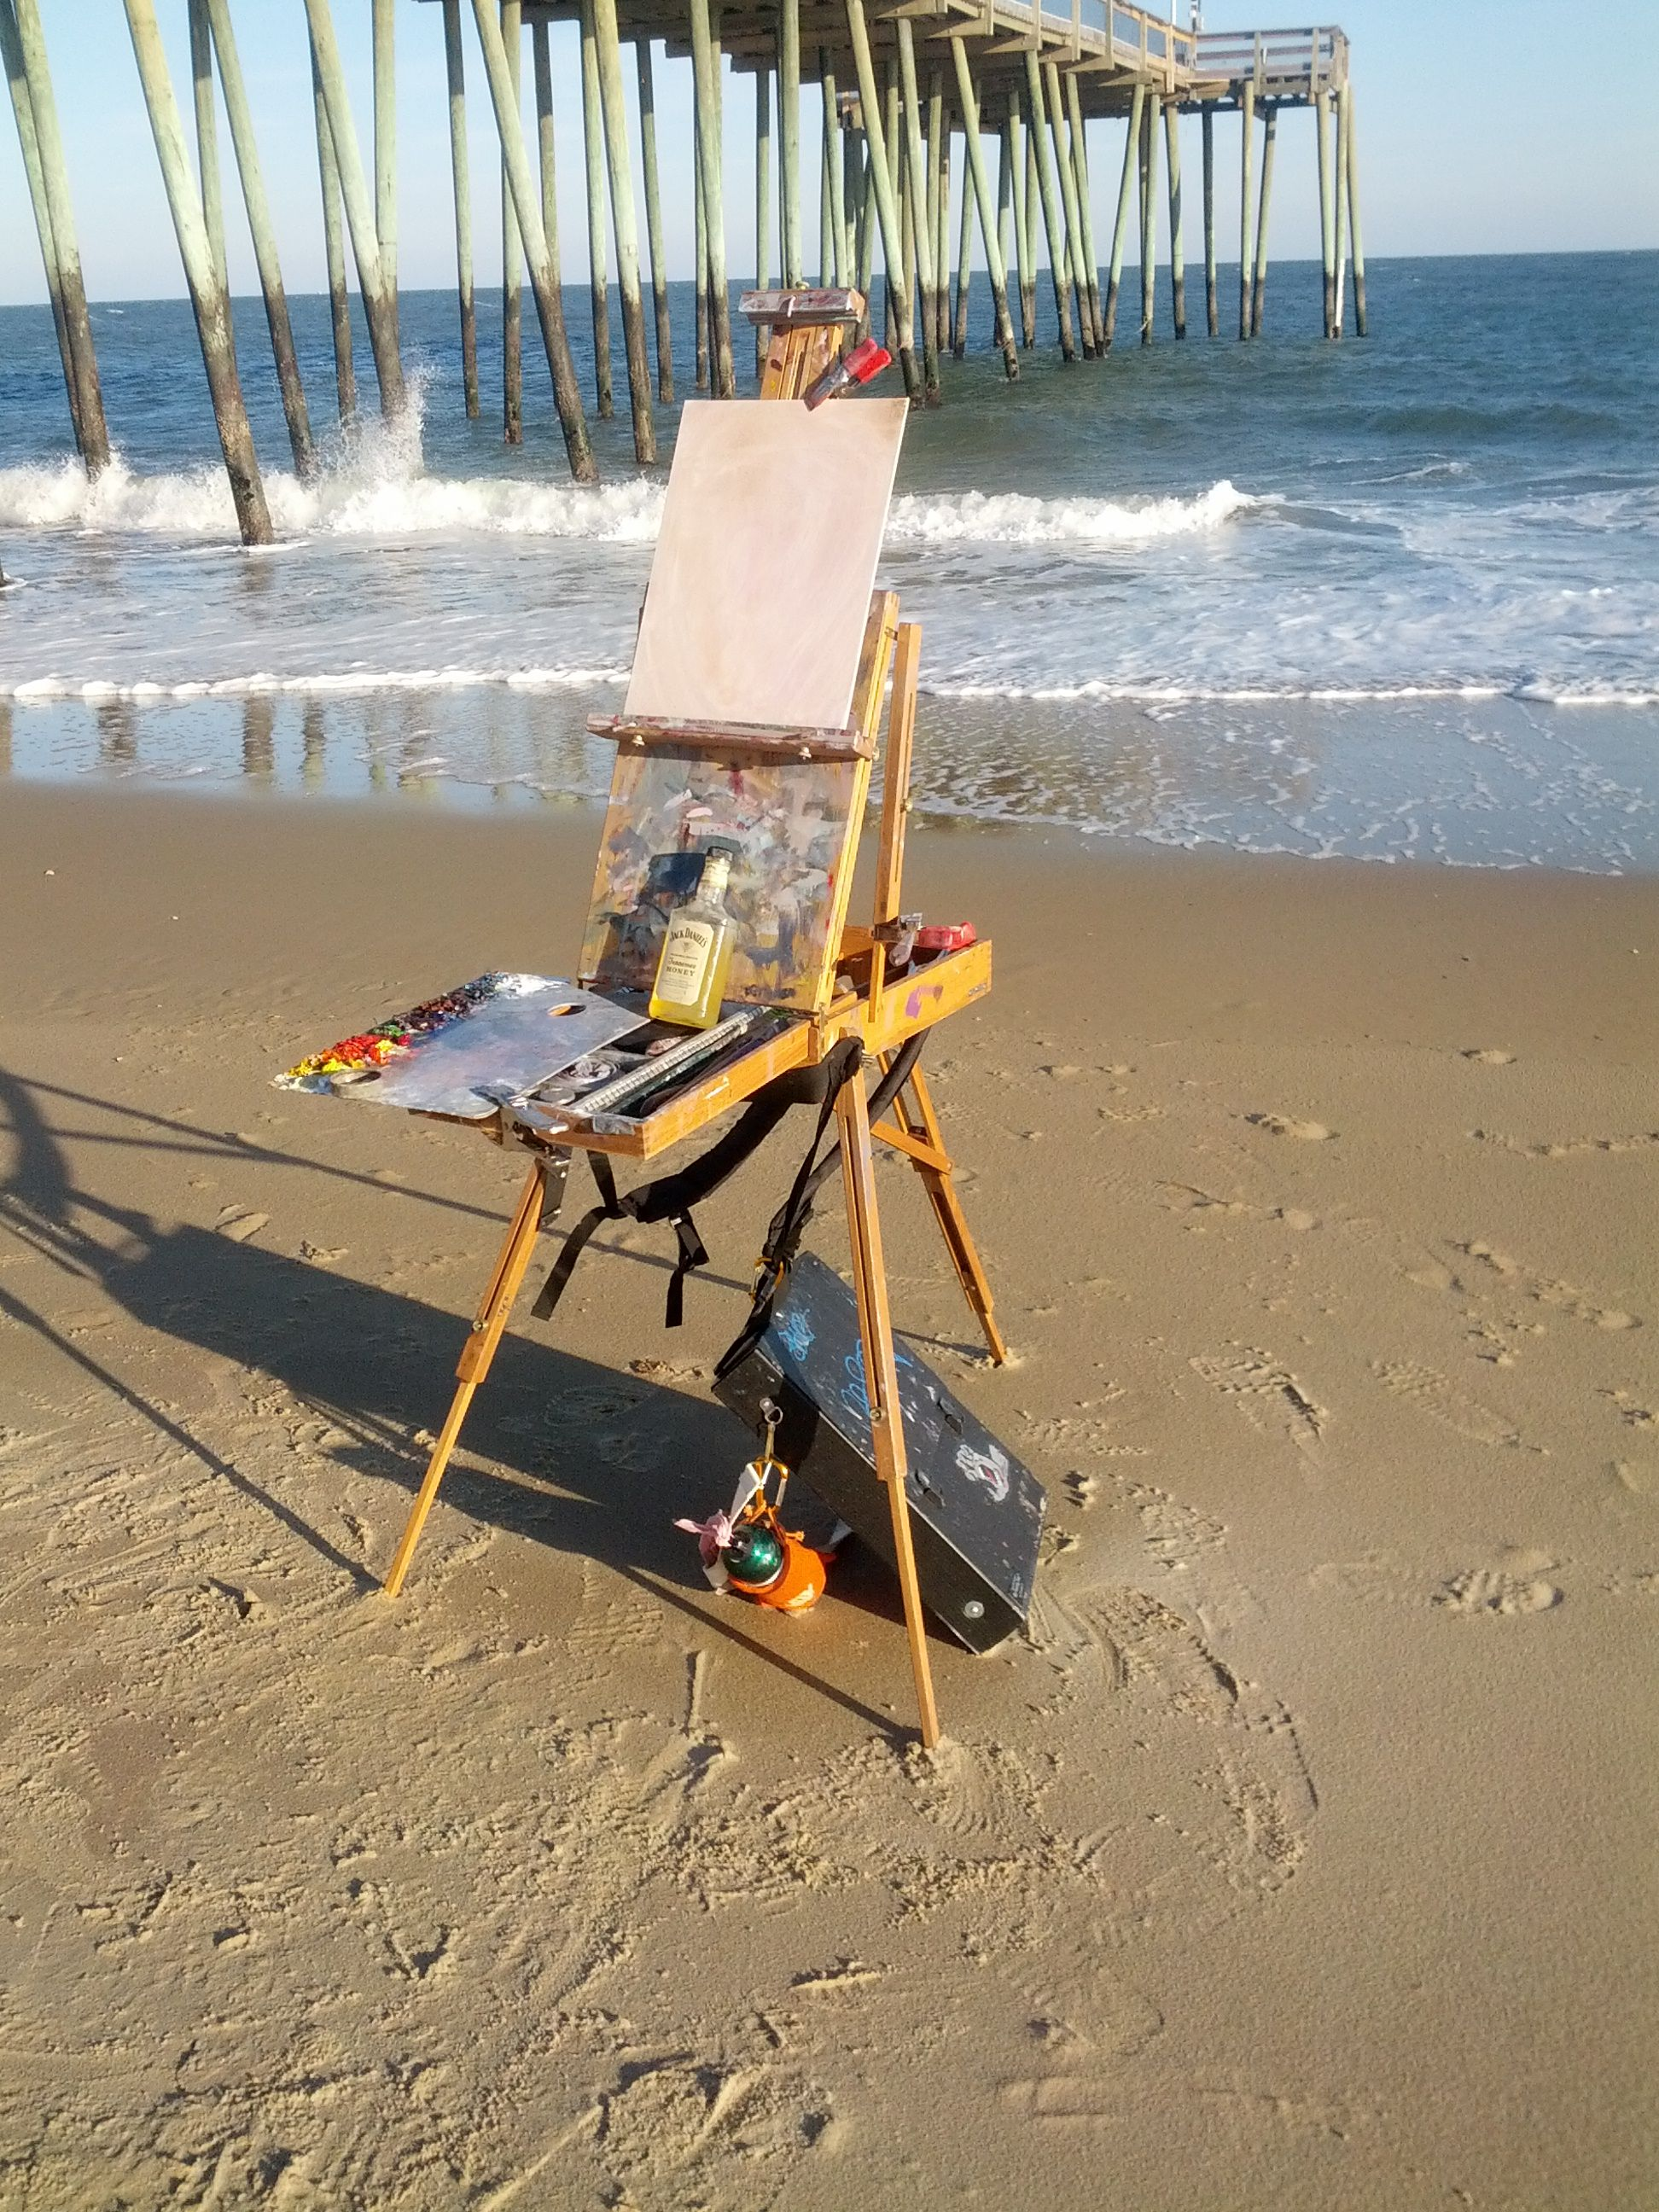 painting on the beach at Ocean City, MD,,,this pier has